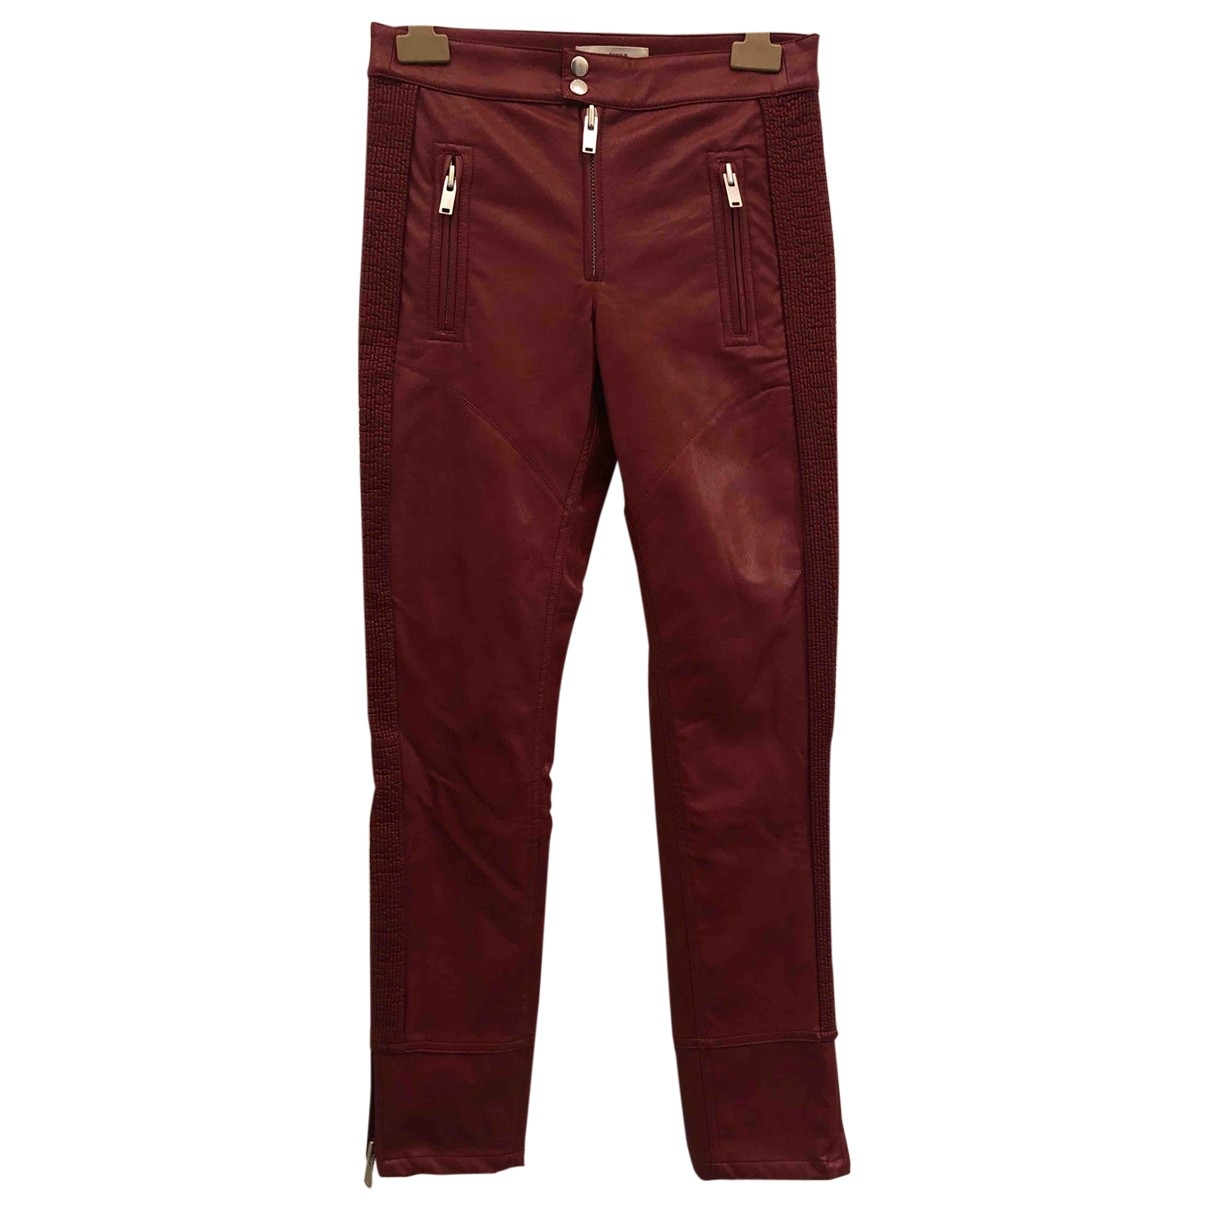 Isabel Marant Etoile \N Red Leather Trousers for Women 34 FR